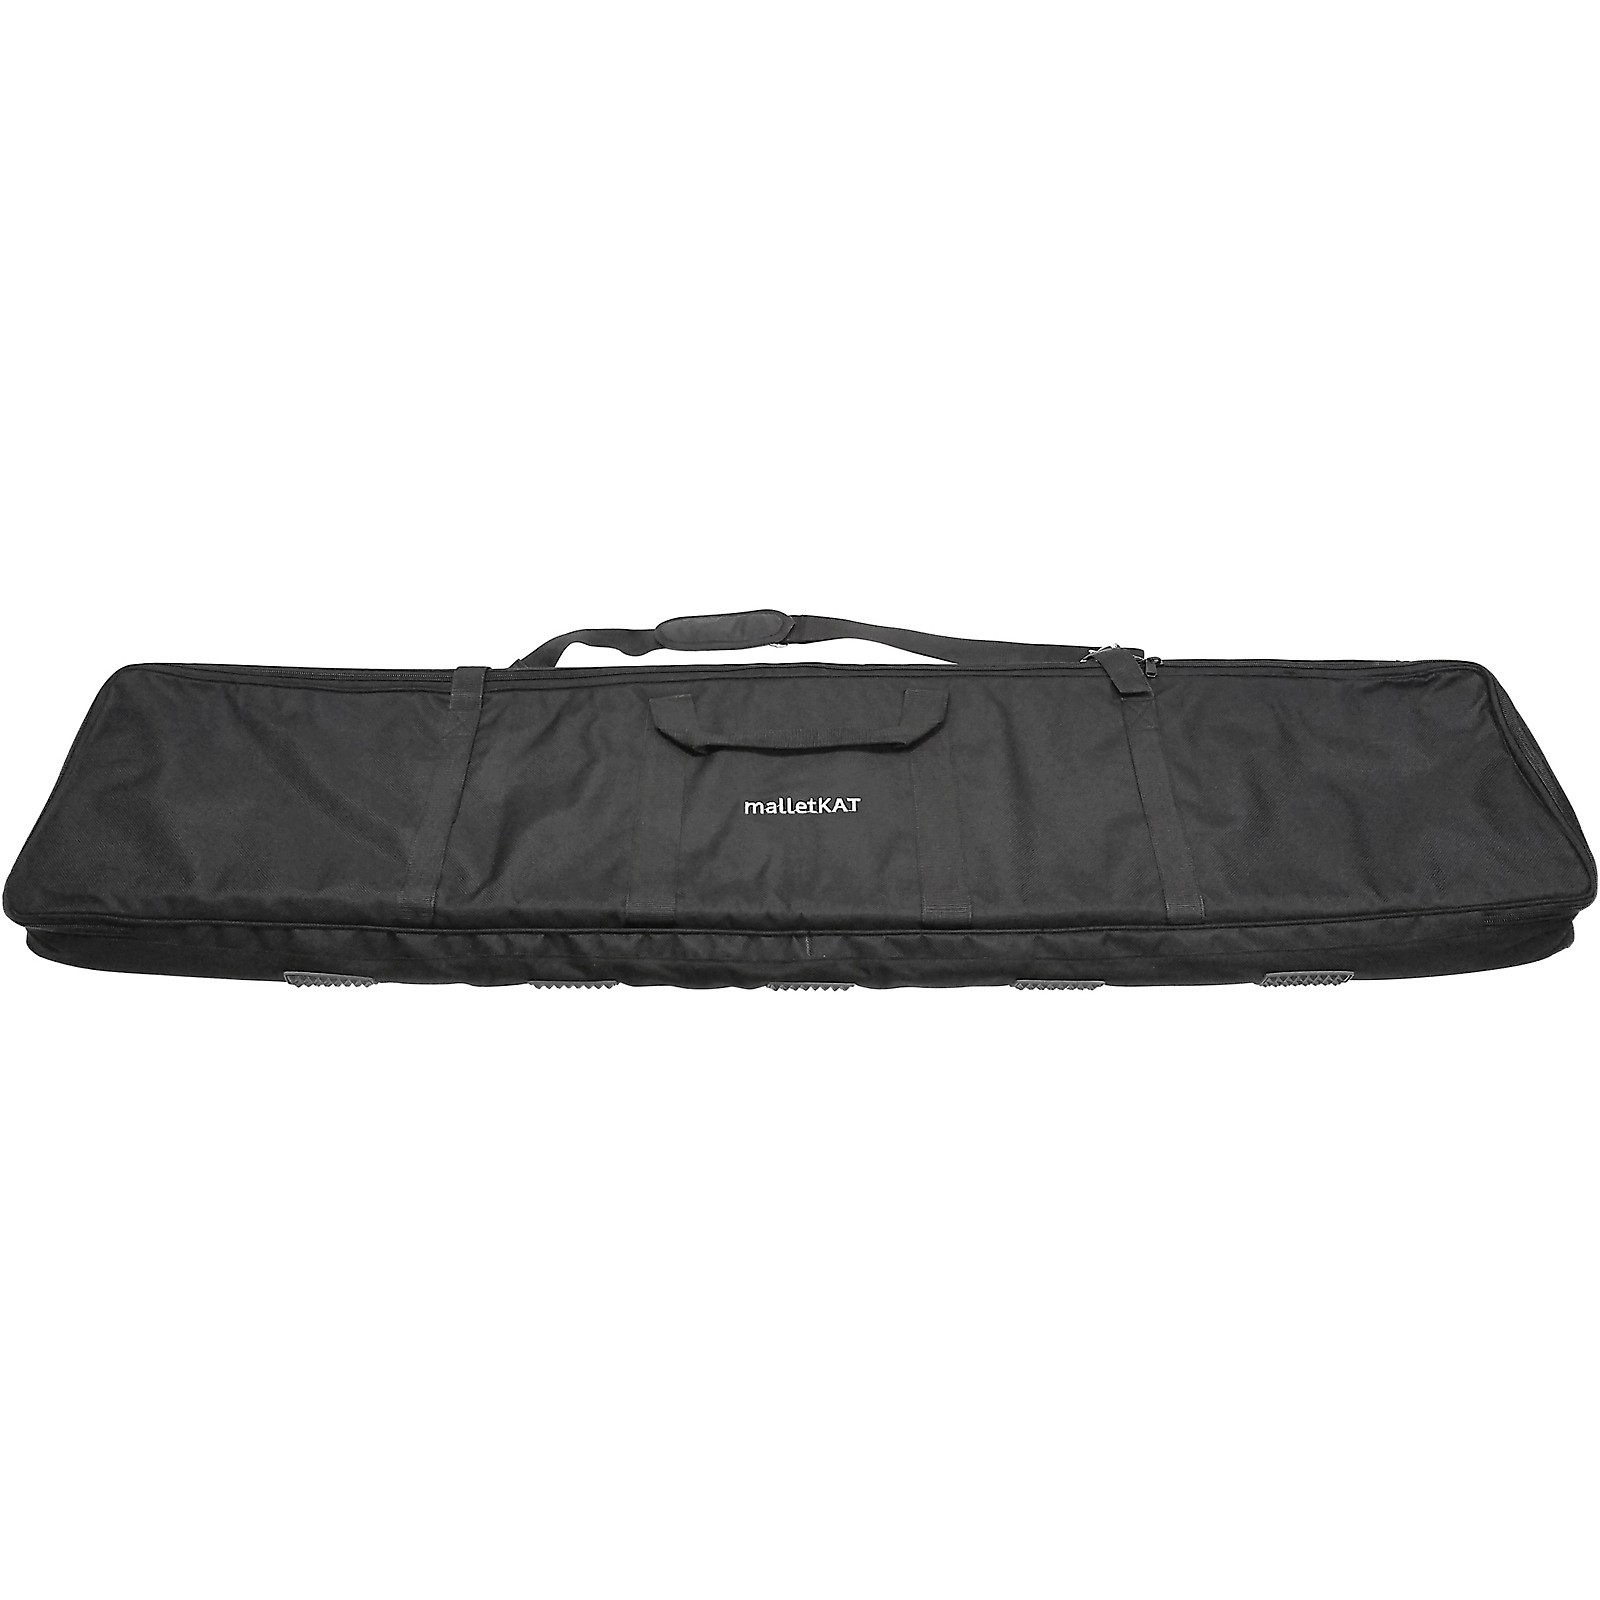 KAT Percussion Softcase for MalletKAT and VibeKAT Grand